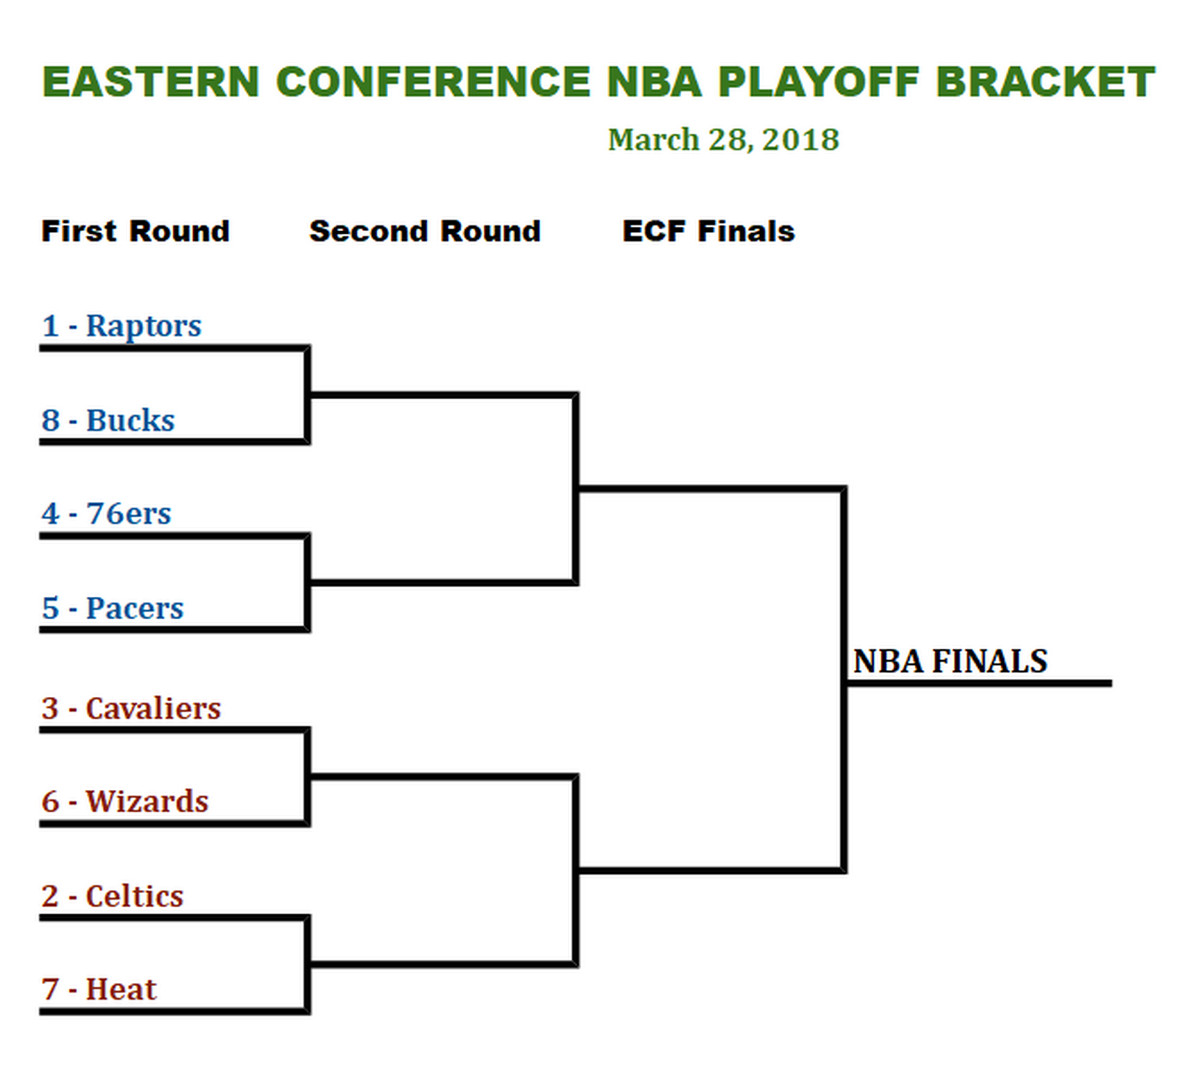 Eastern Conference Playoff Bracket: Where The Miami Heat